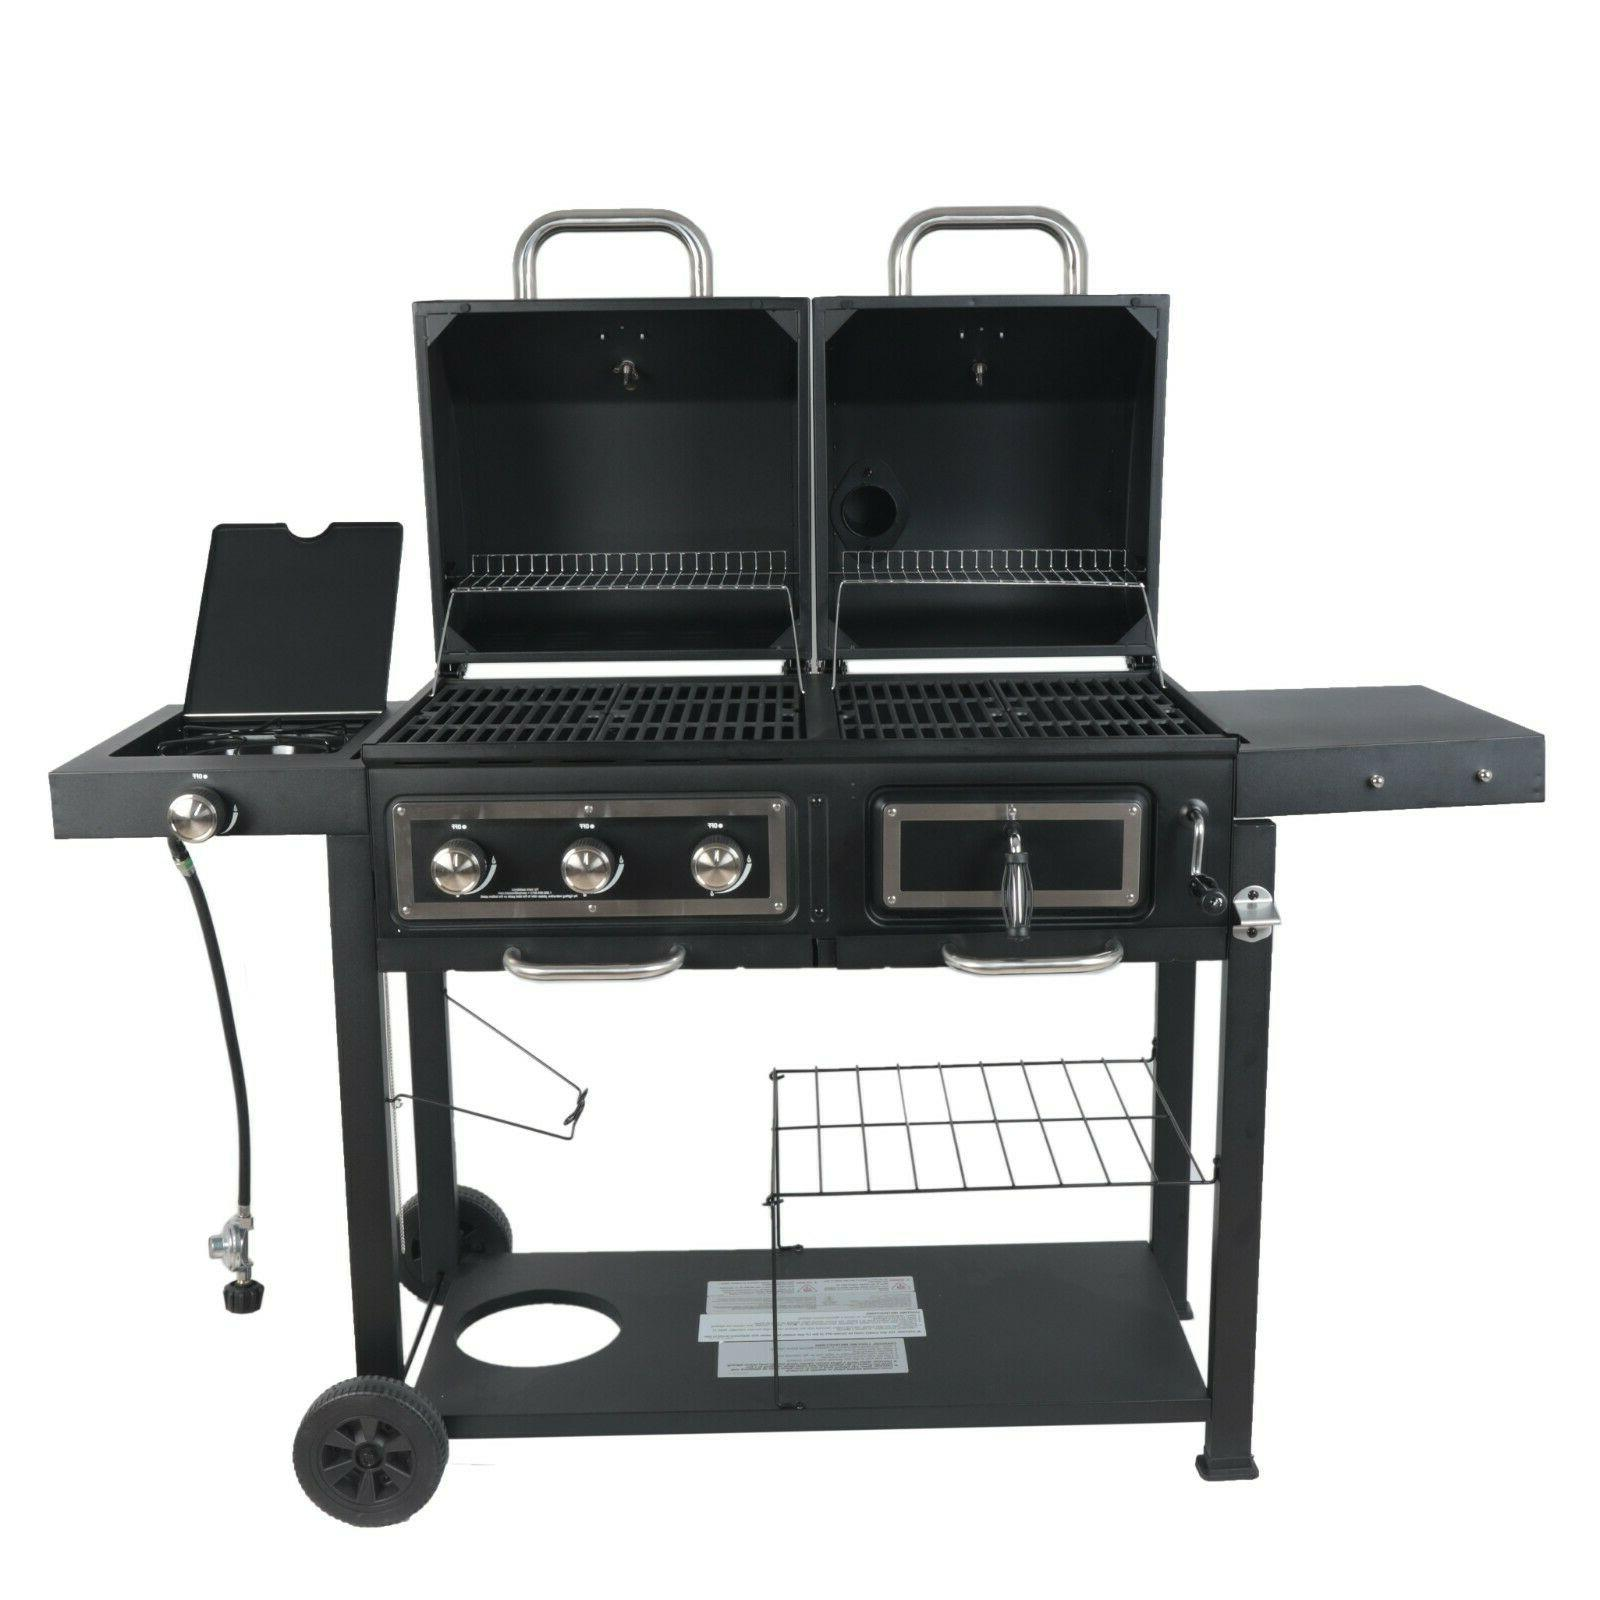 RevoAce Charcoal Gas Stainless Steel USA